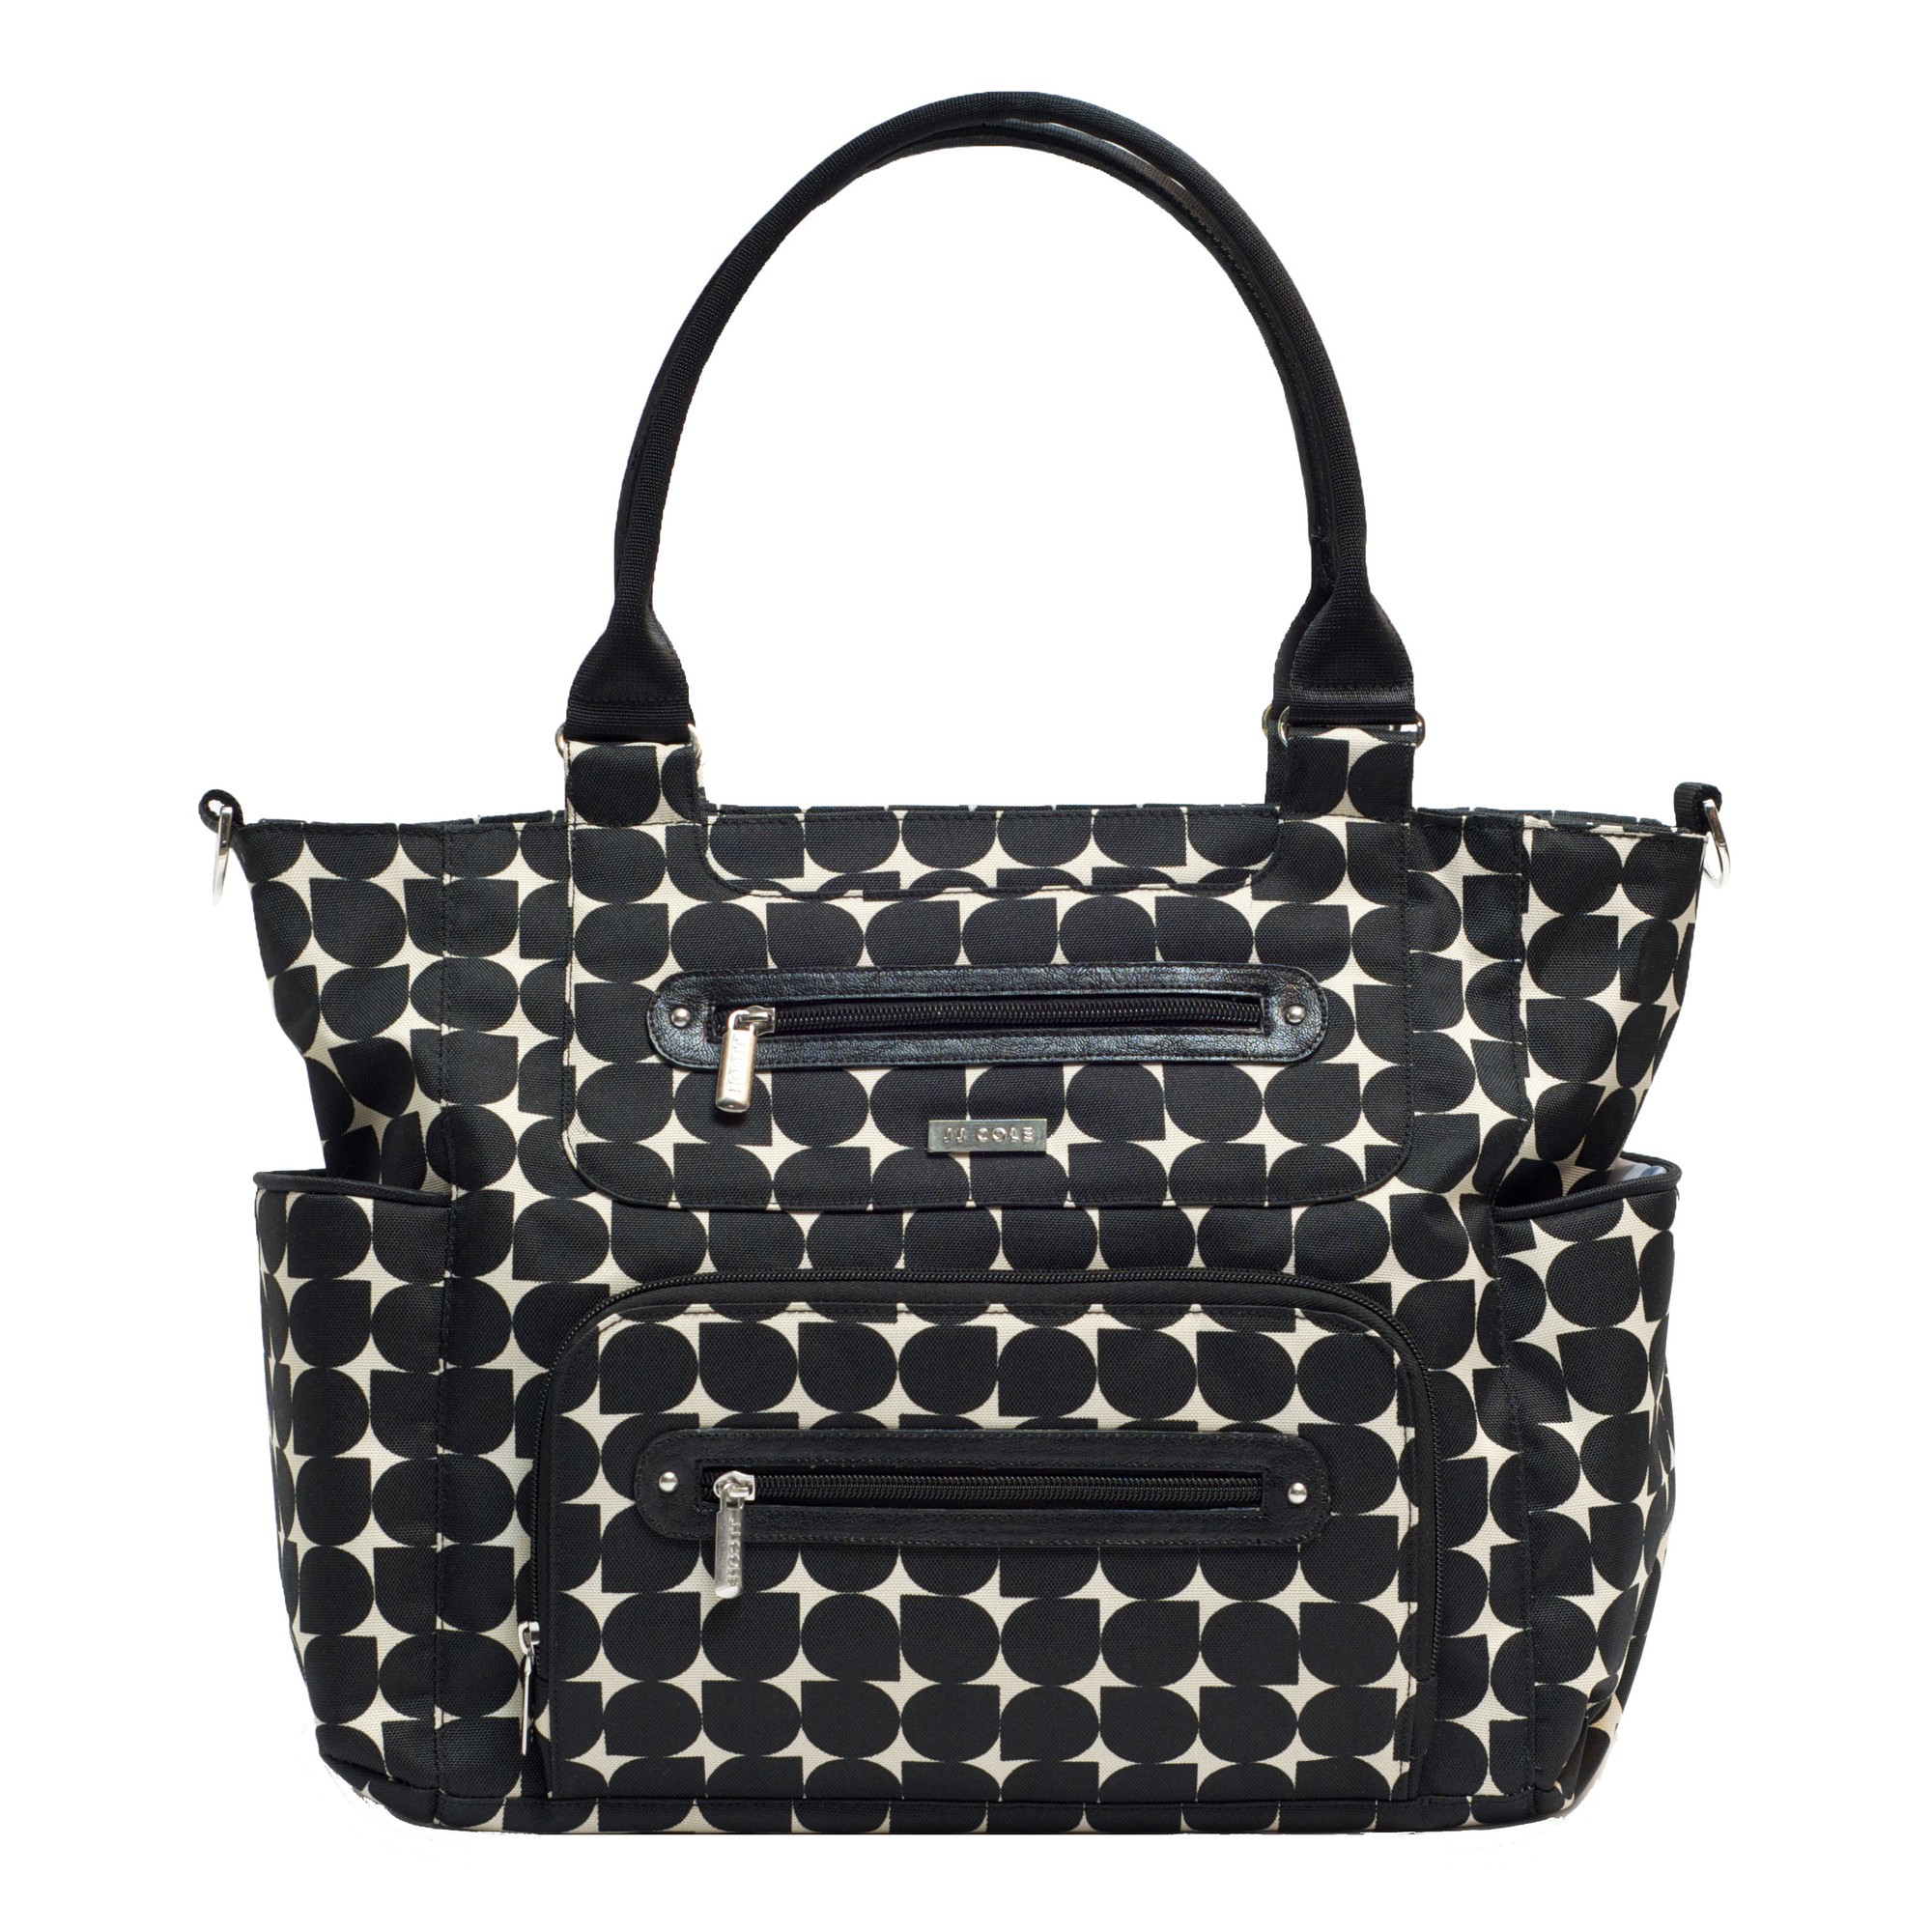 JJ COLE Caprice Diaper Bag - Silver Drop